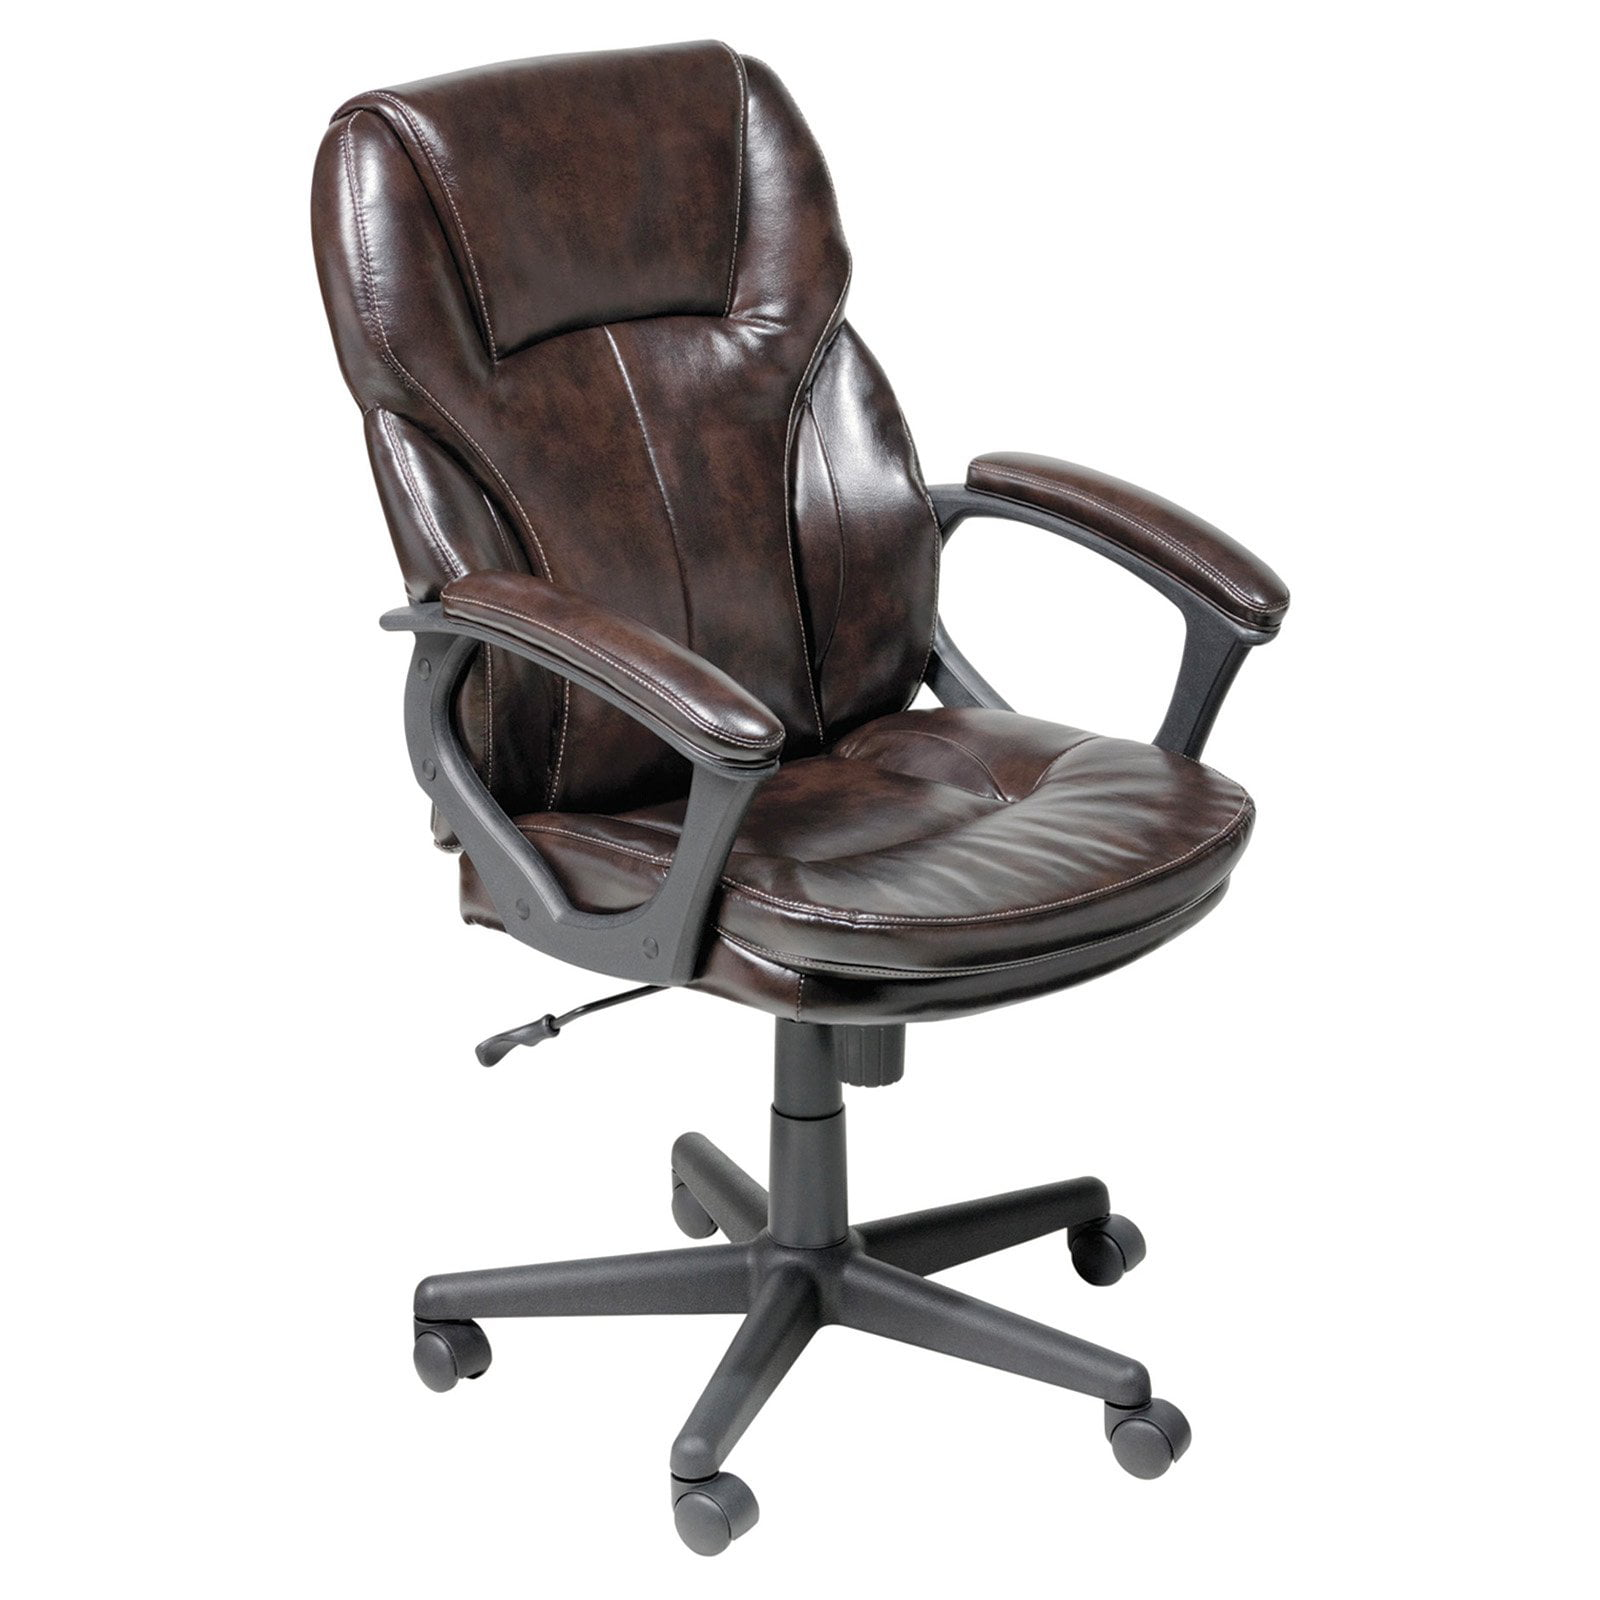 brown home chairs executive office design leather ideas chair